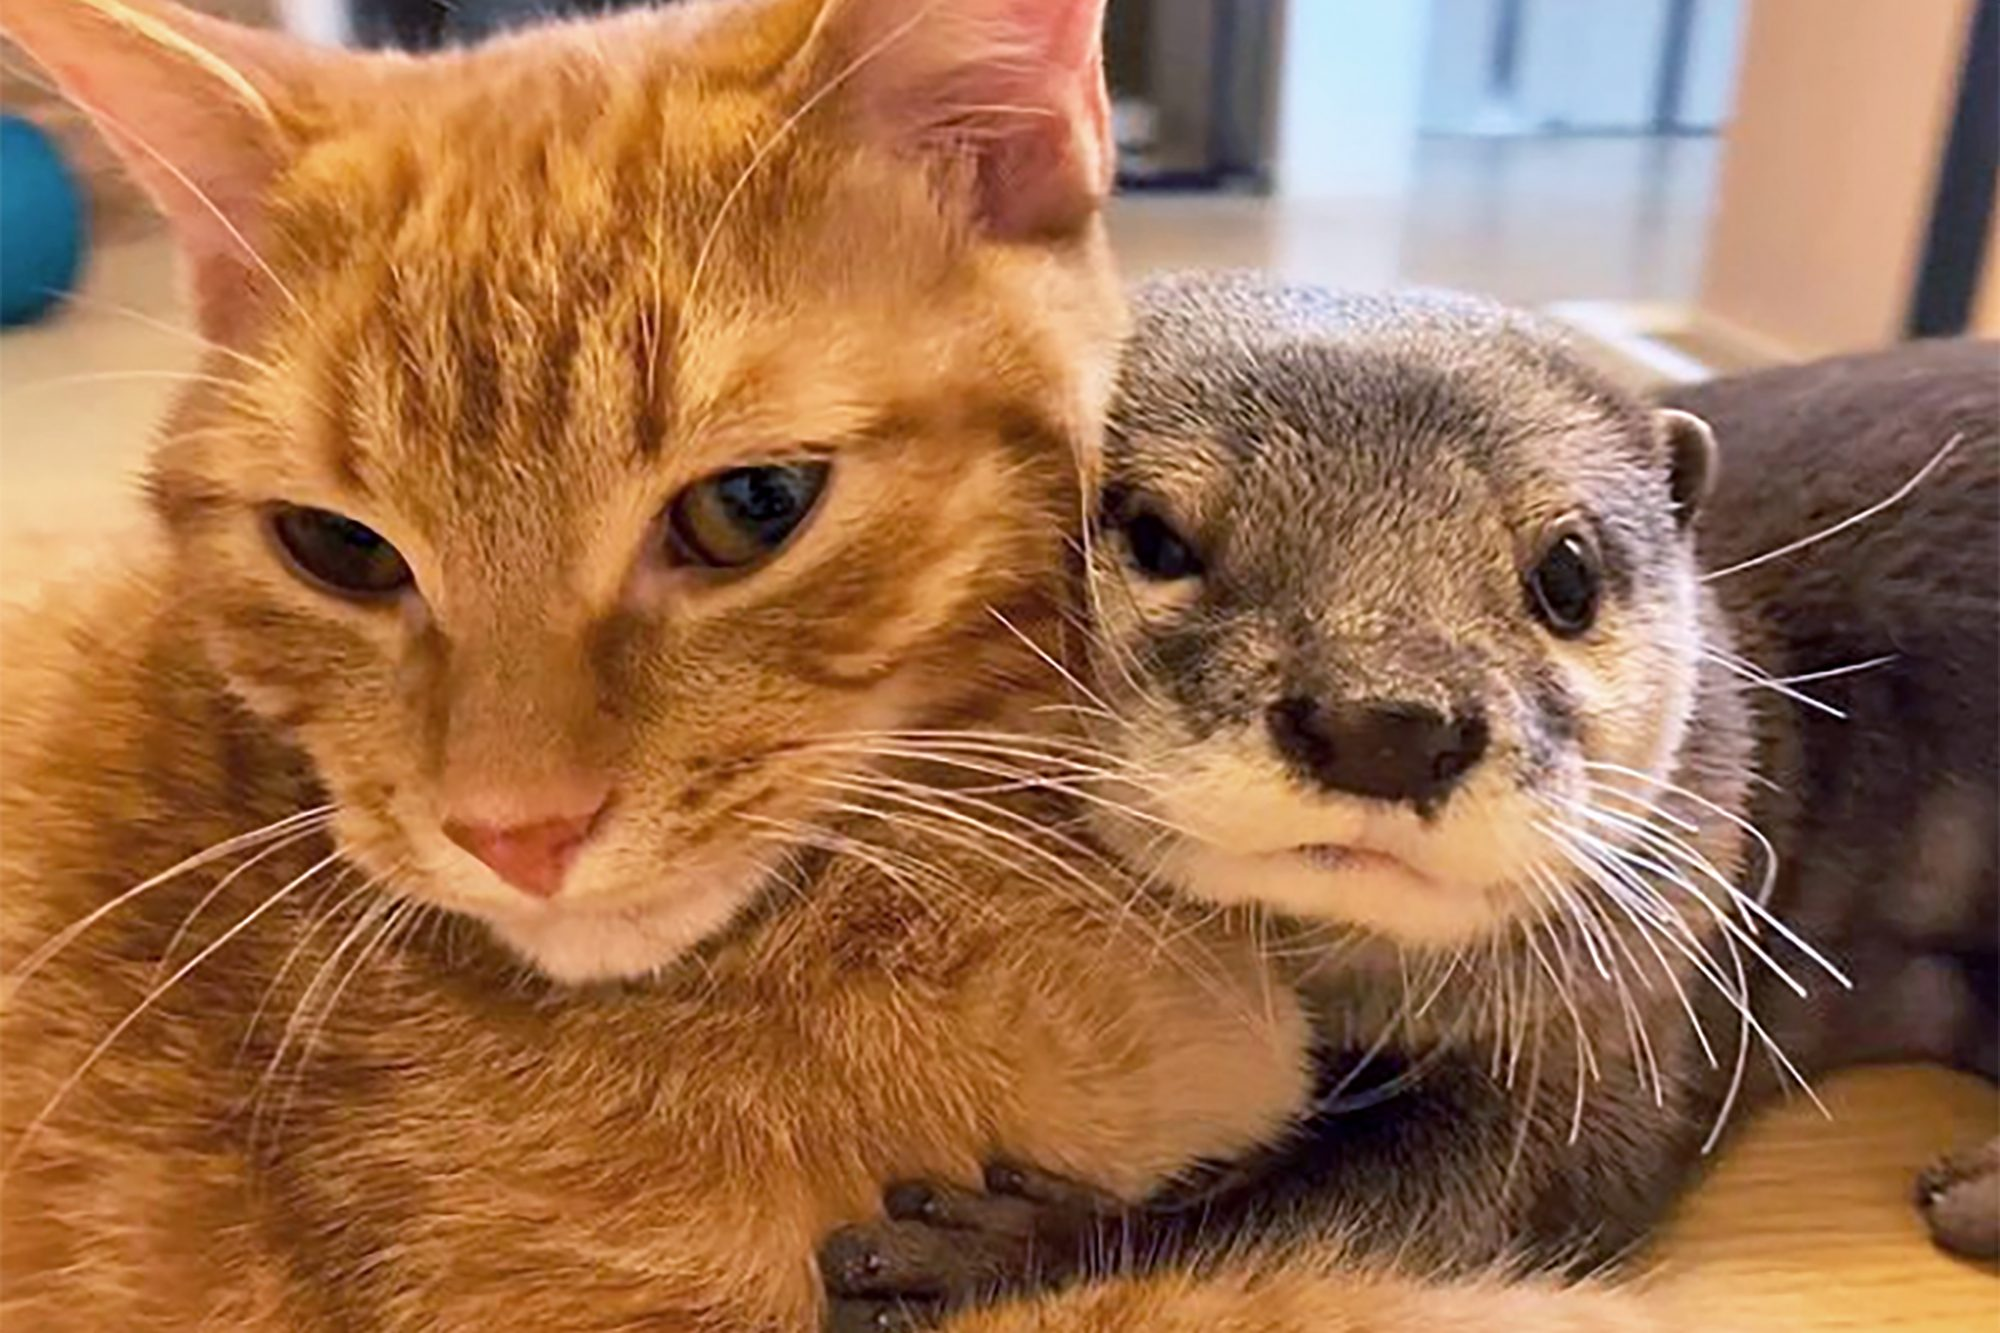 Orange cat cuddles with otter